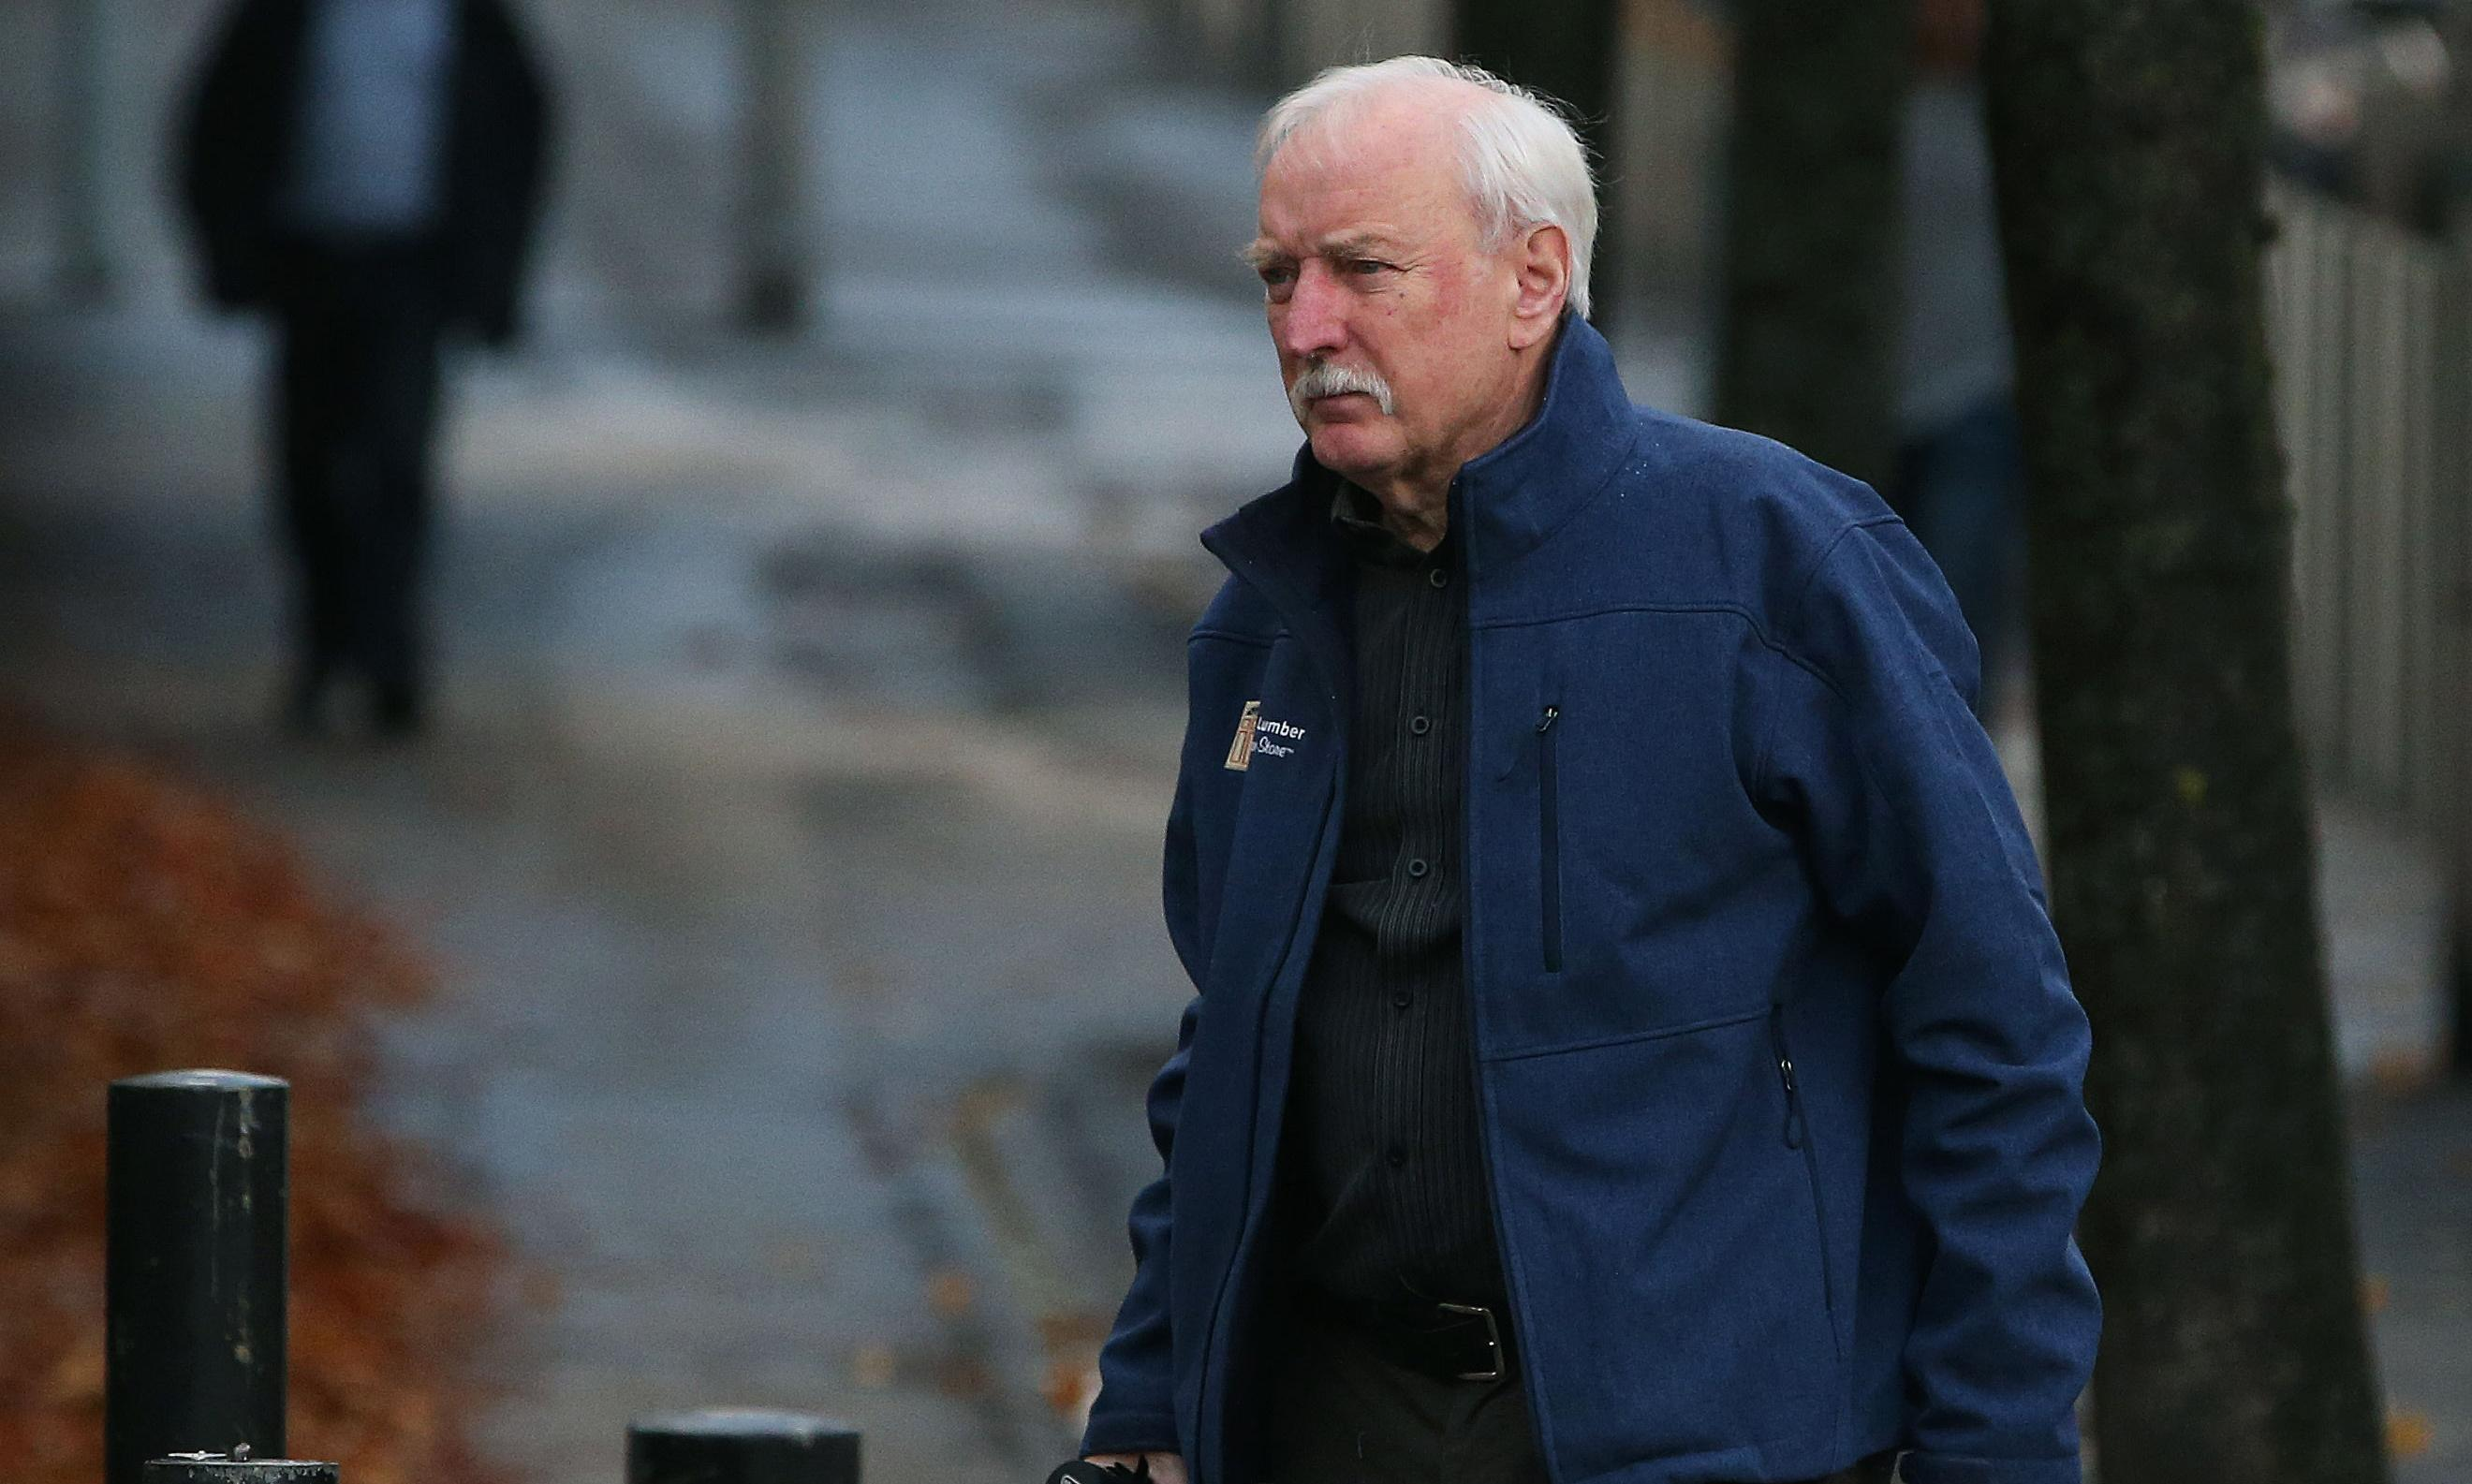 Former IRA chief cleared over Jean McConville killing